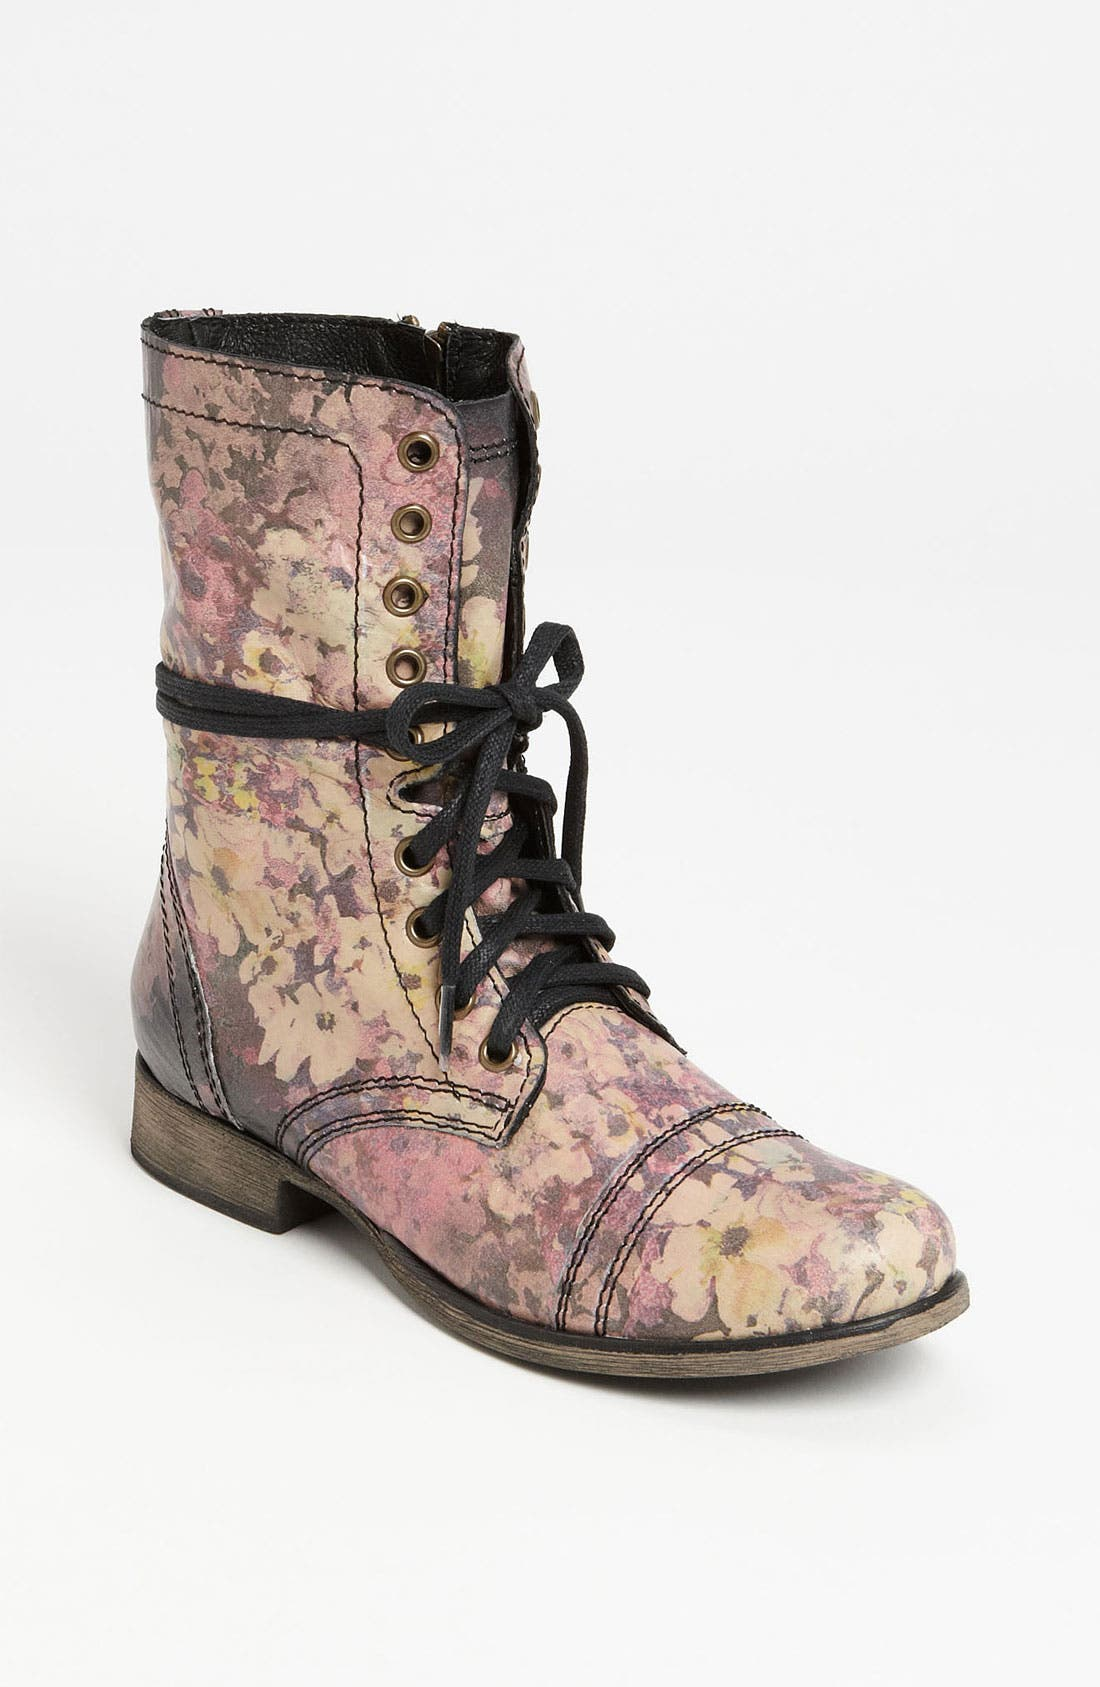 Alternate Image 1 Selected - Steve Madden 'Blomm' Boot